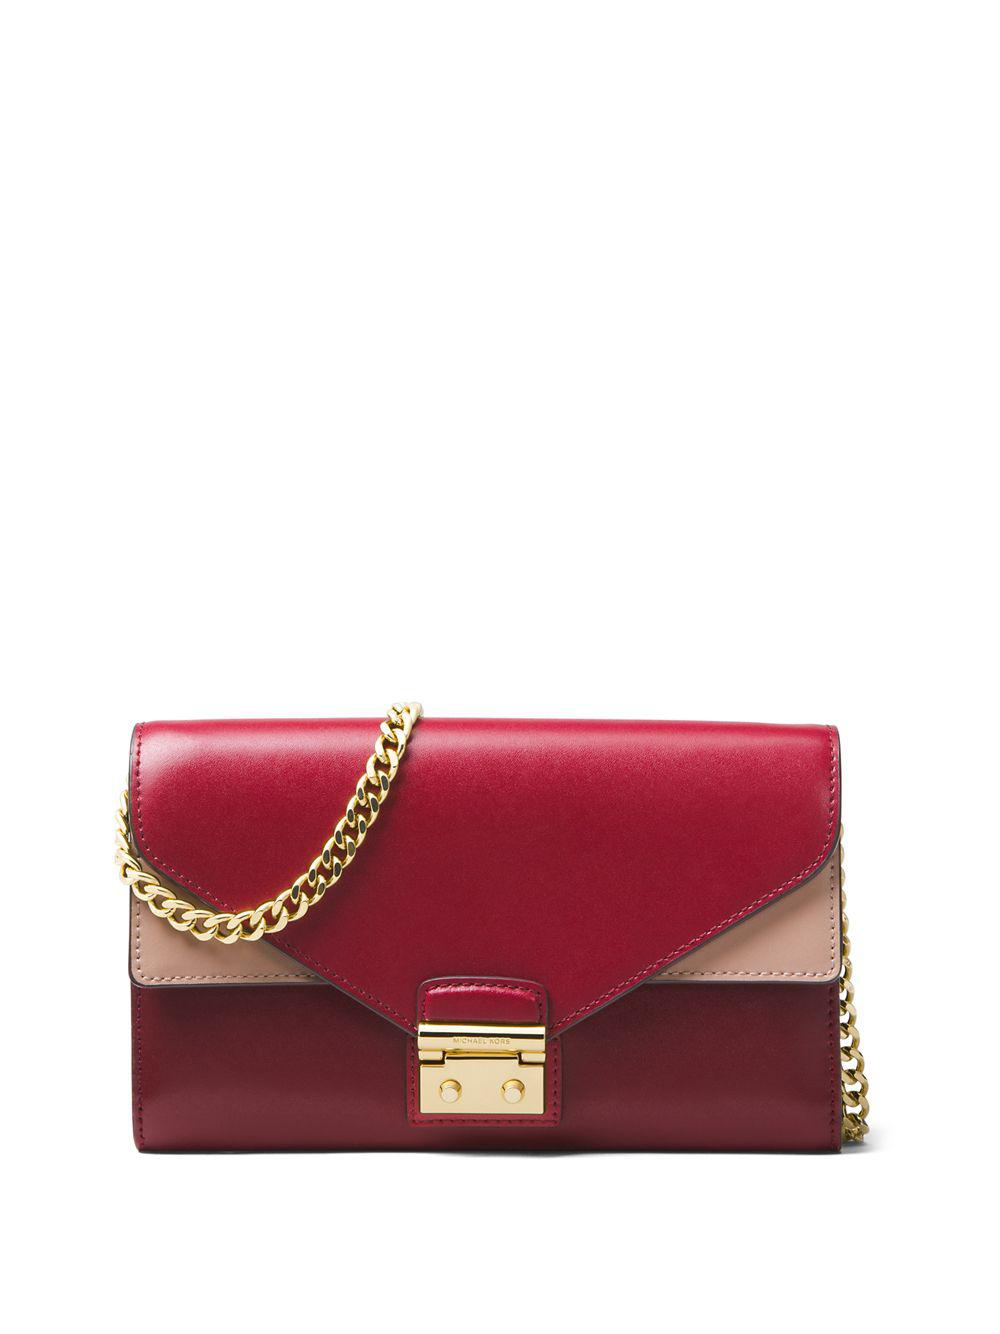 Michael Michael Kors Sloan Leather Chainlink Clutch in Red - Lyst 113db7e2a53a2